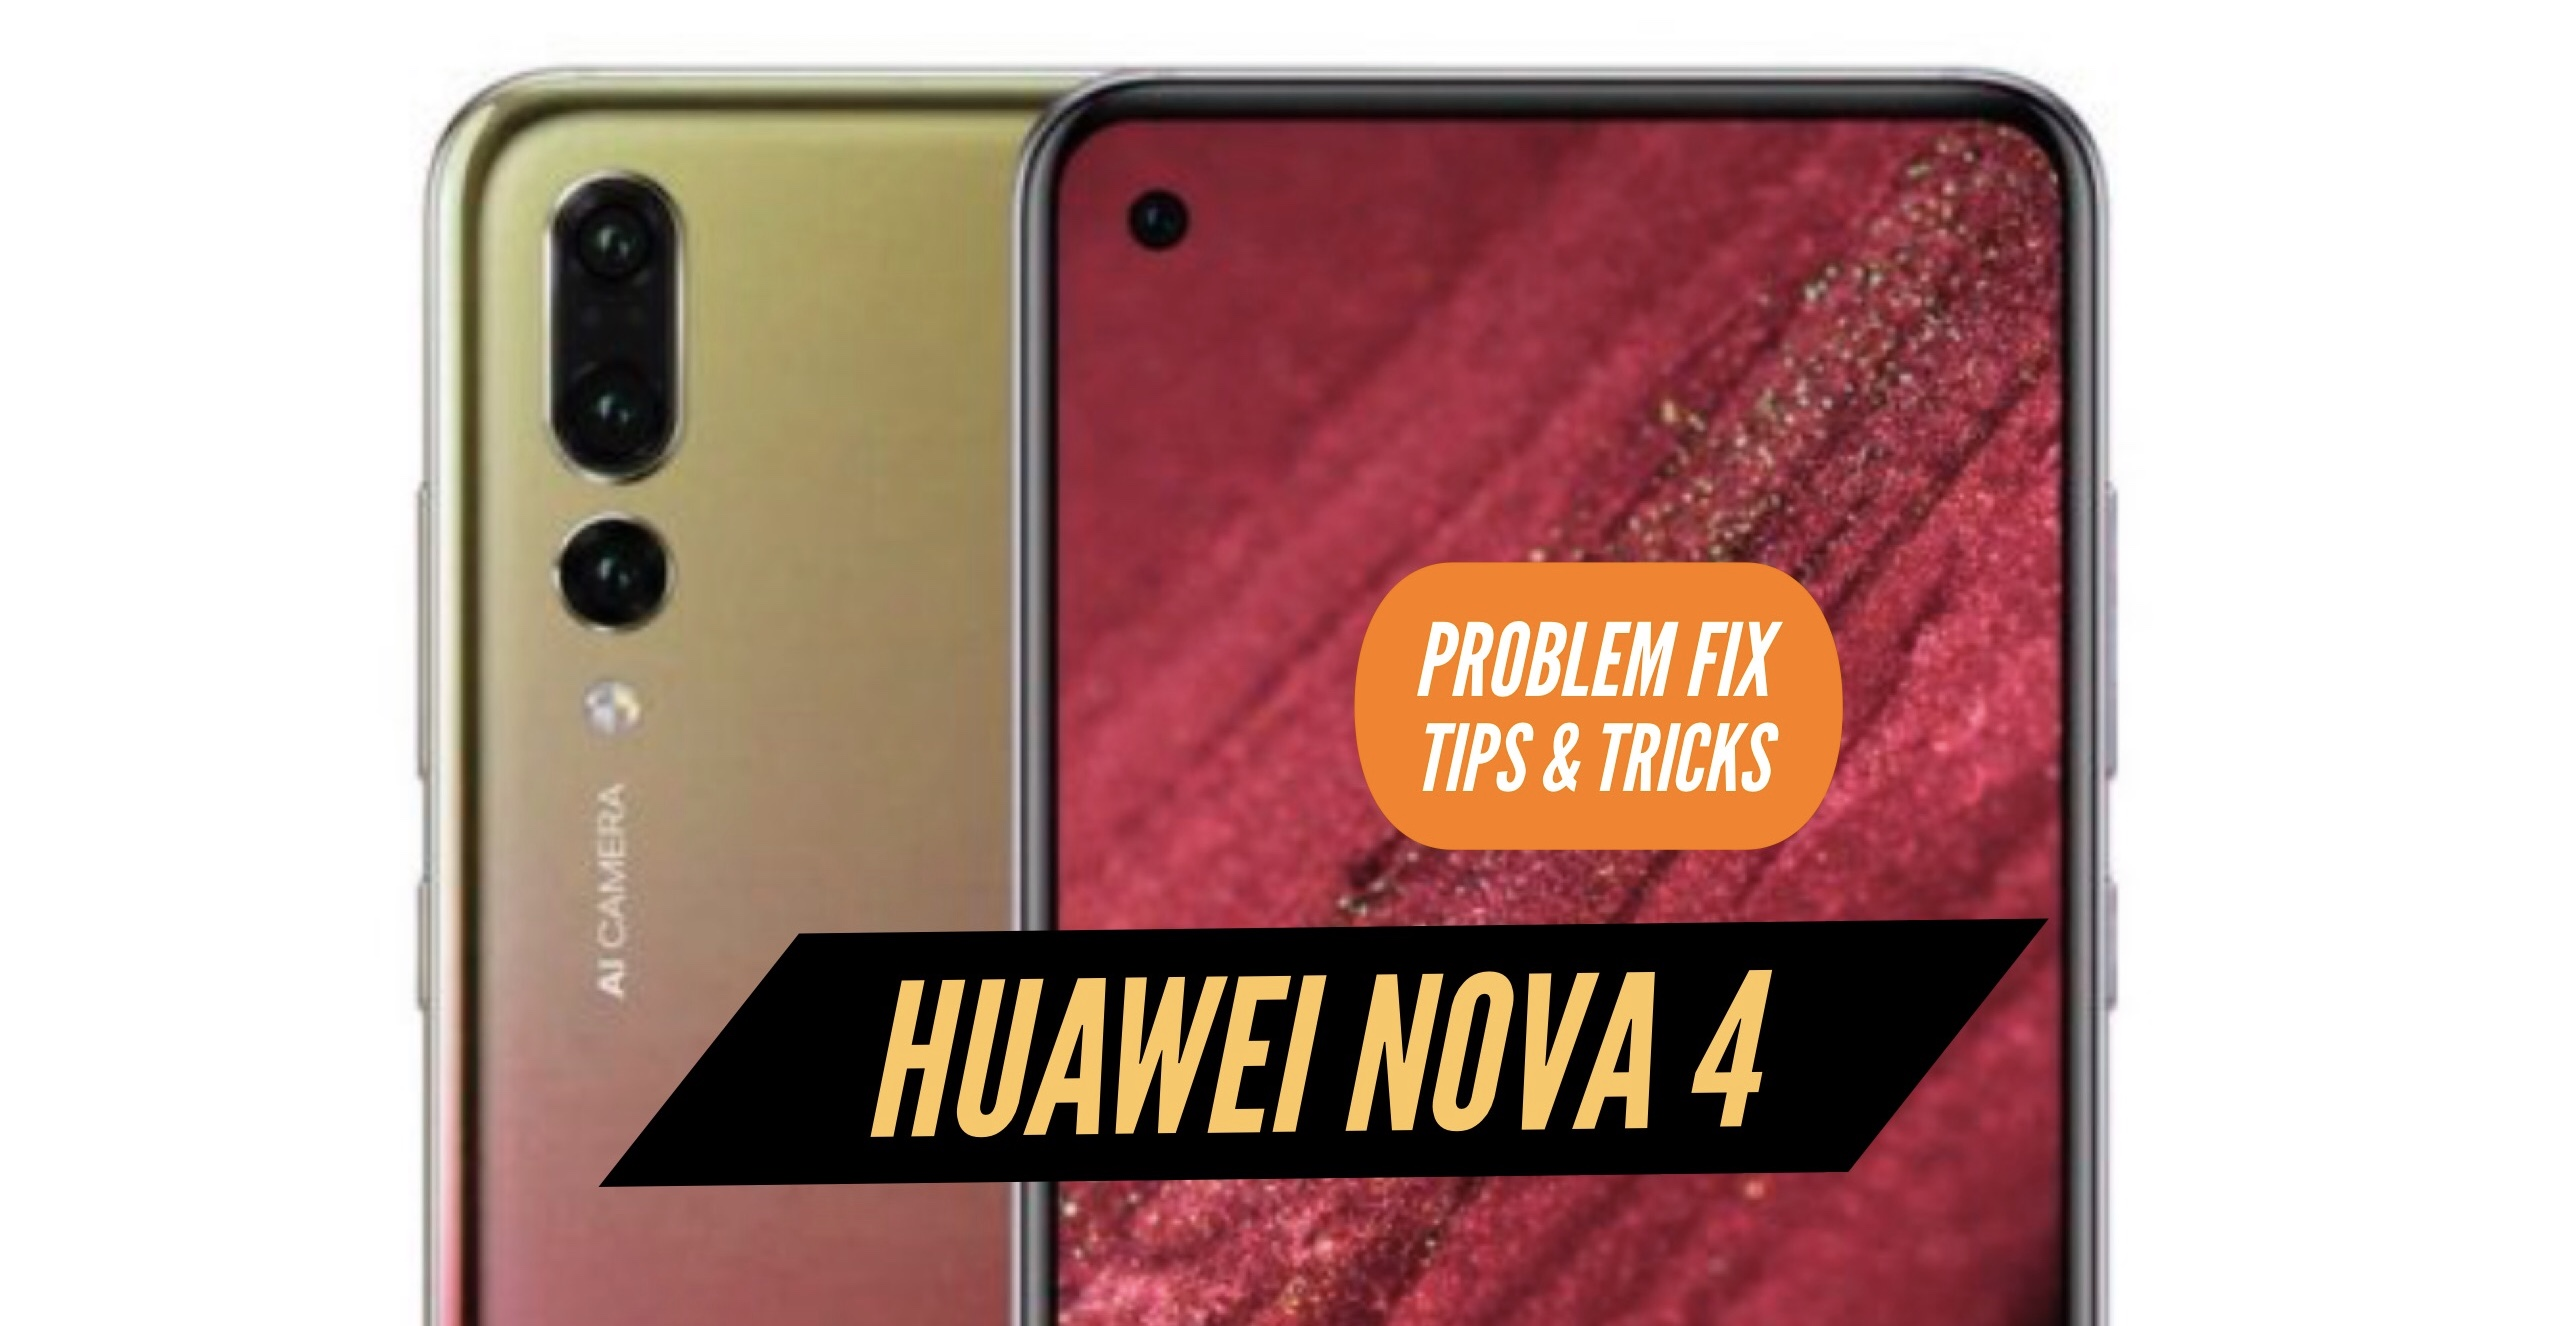 Huawei Nova 4 Most Common Problems & Issues + Solution Fix